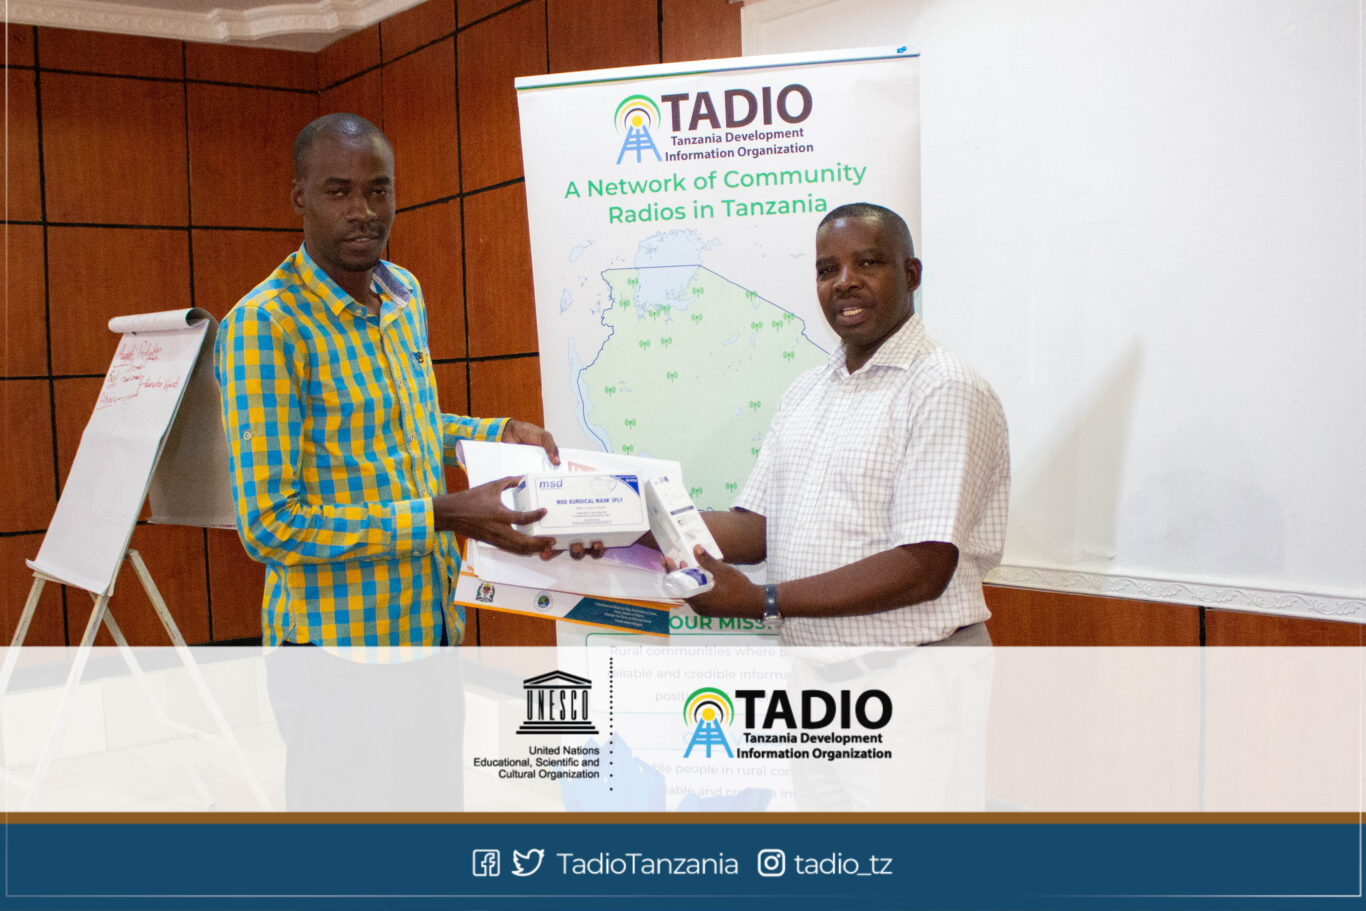 Mazingira FM Manager, Mr. Ally Nyamkinda receiving health protection equipment from TADIO Chairperson, Mr. Prosper Kwigize